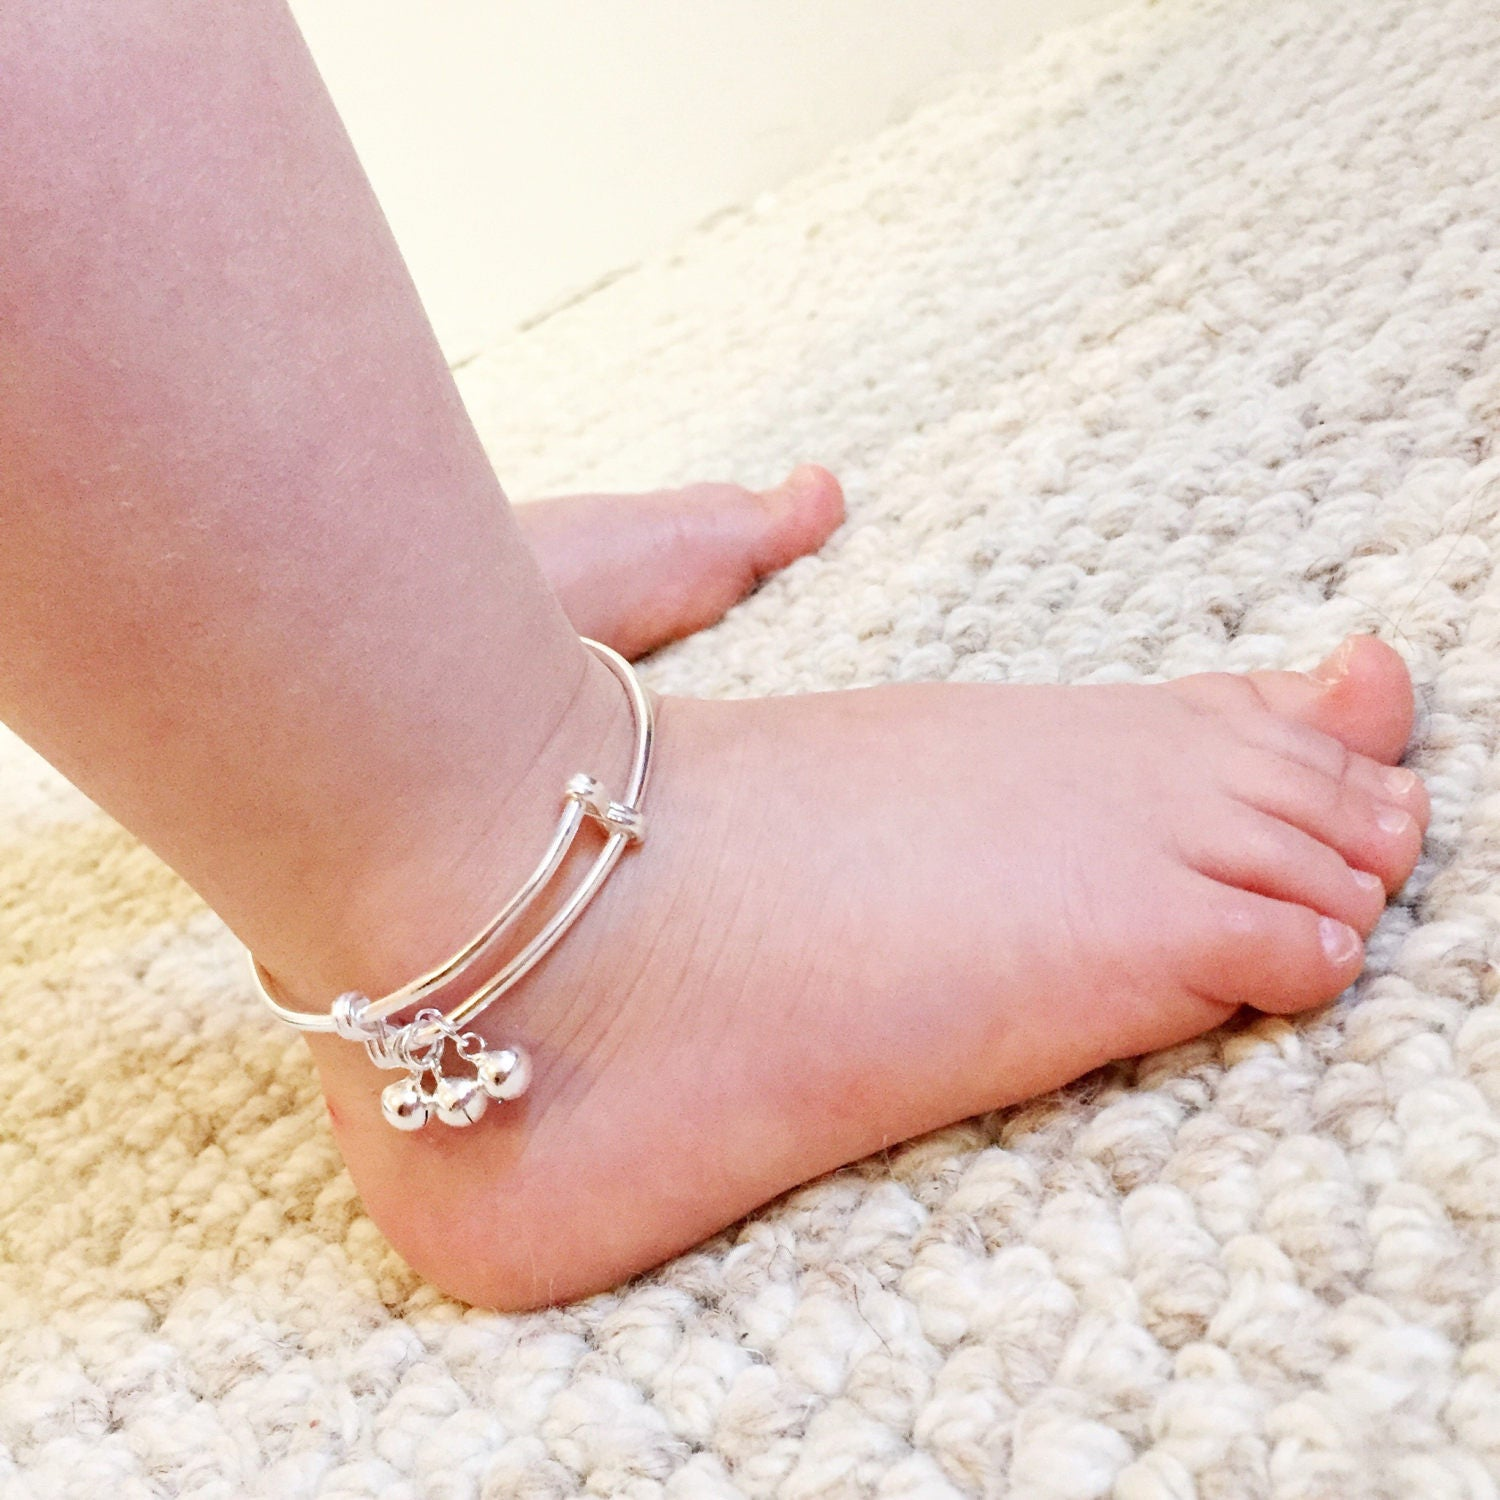 birthstone gallery silver toddler personalized gold bracelets stackable child adjustable custommade bracelet bangle anklet charm com mother custom ankle